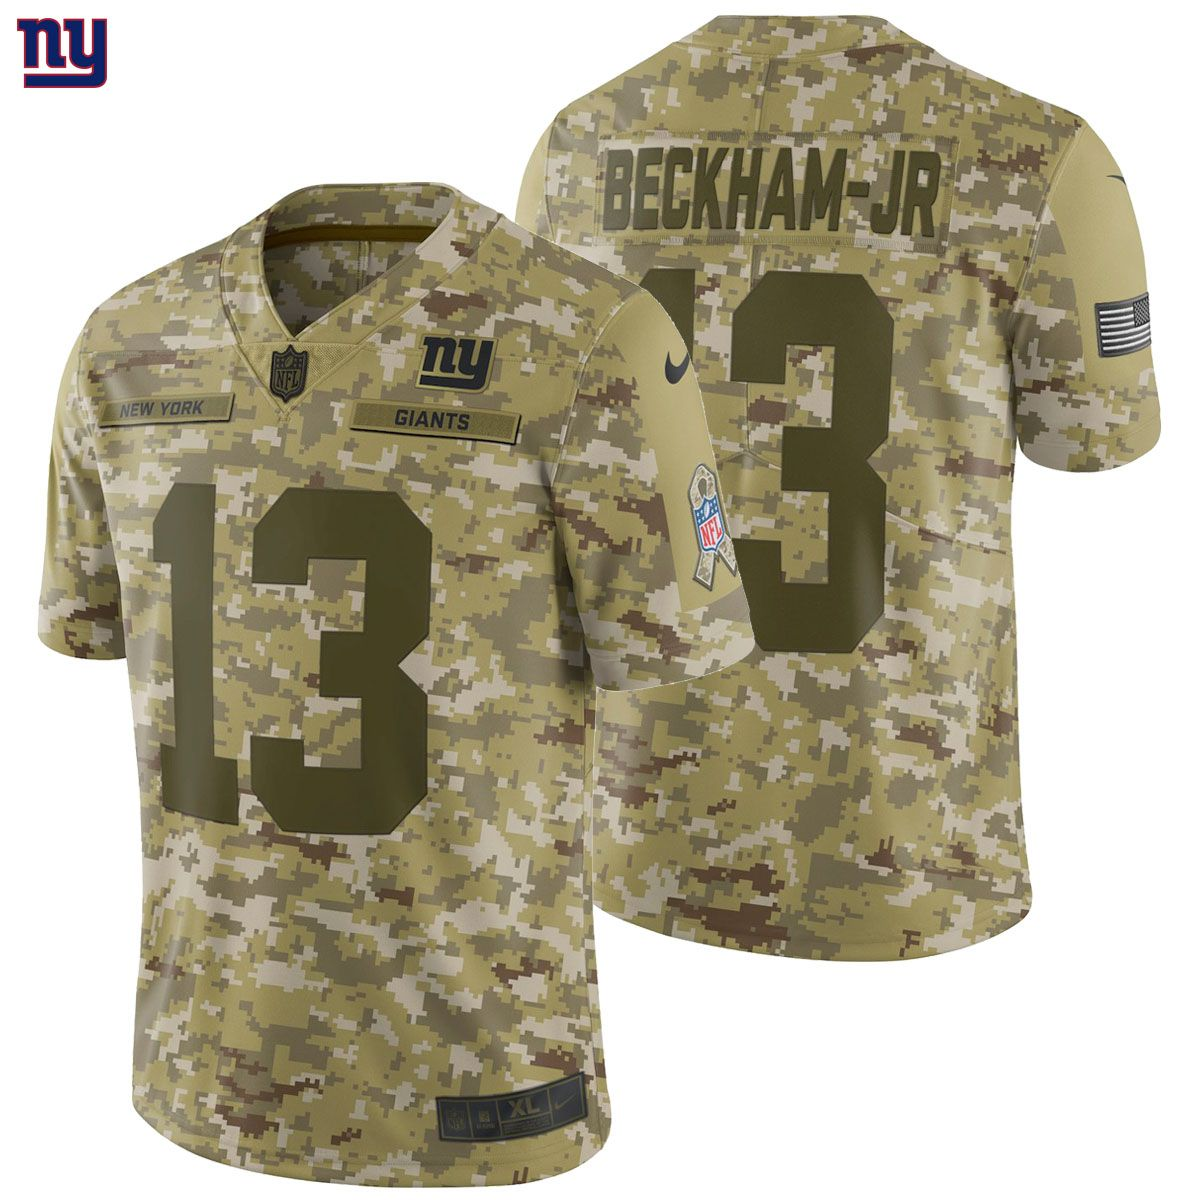 release date 43055 49fd4 Details about Odell Beckham Jr Nike 2018 Salute to Service ...